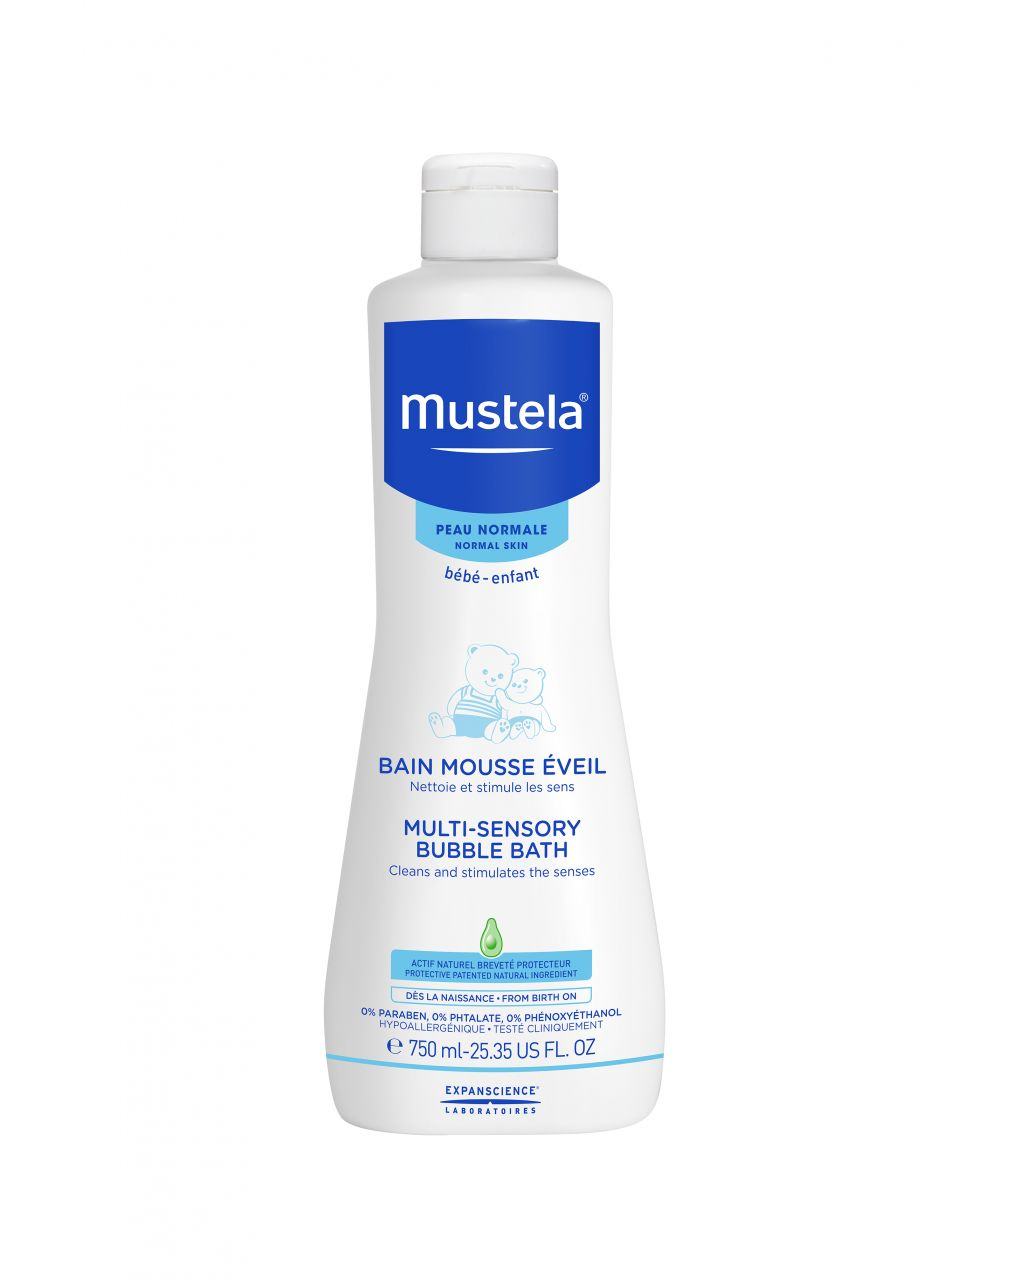 Bagnetto mille bolle 750ml - Mustela